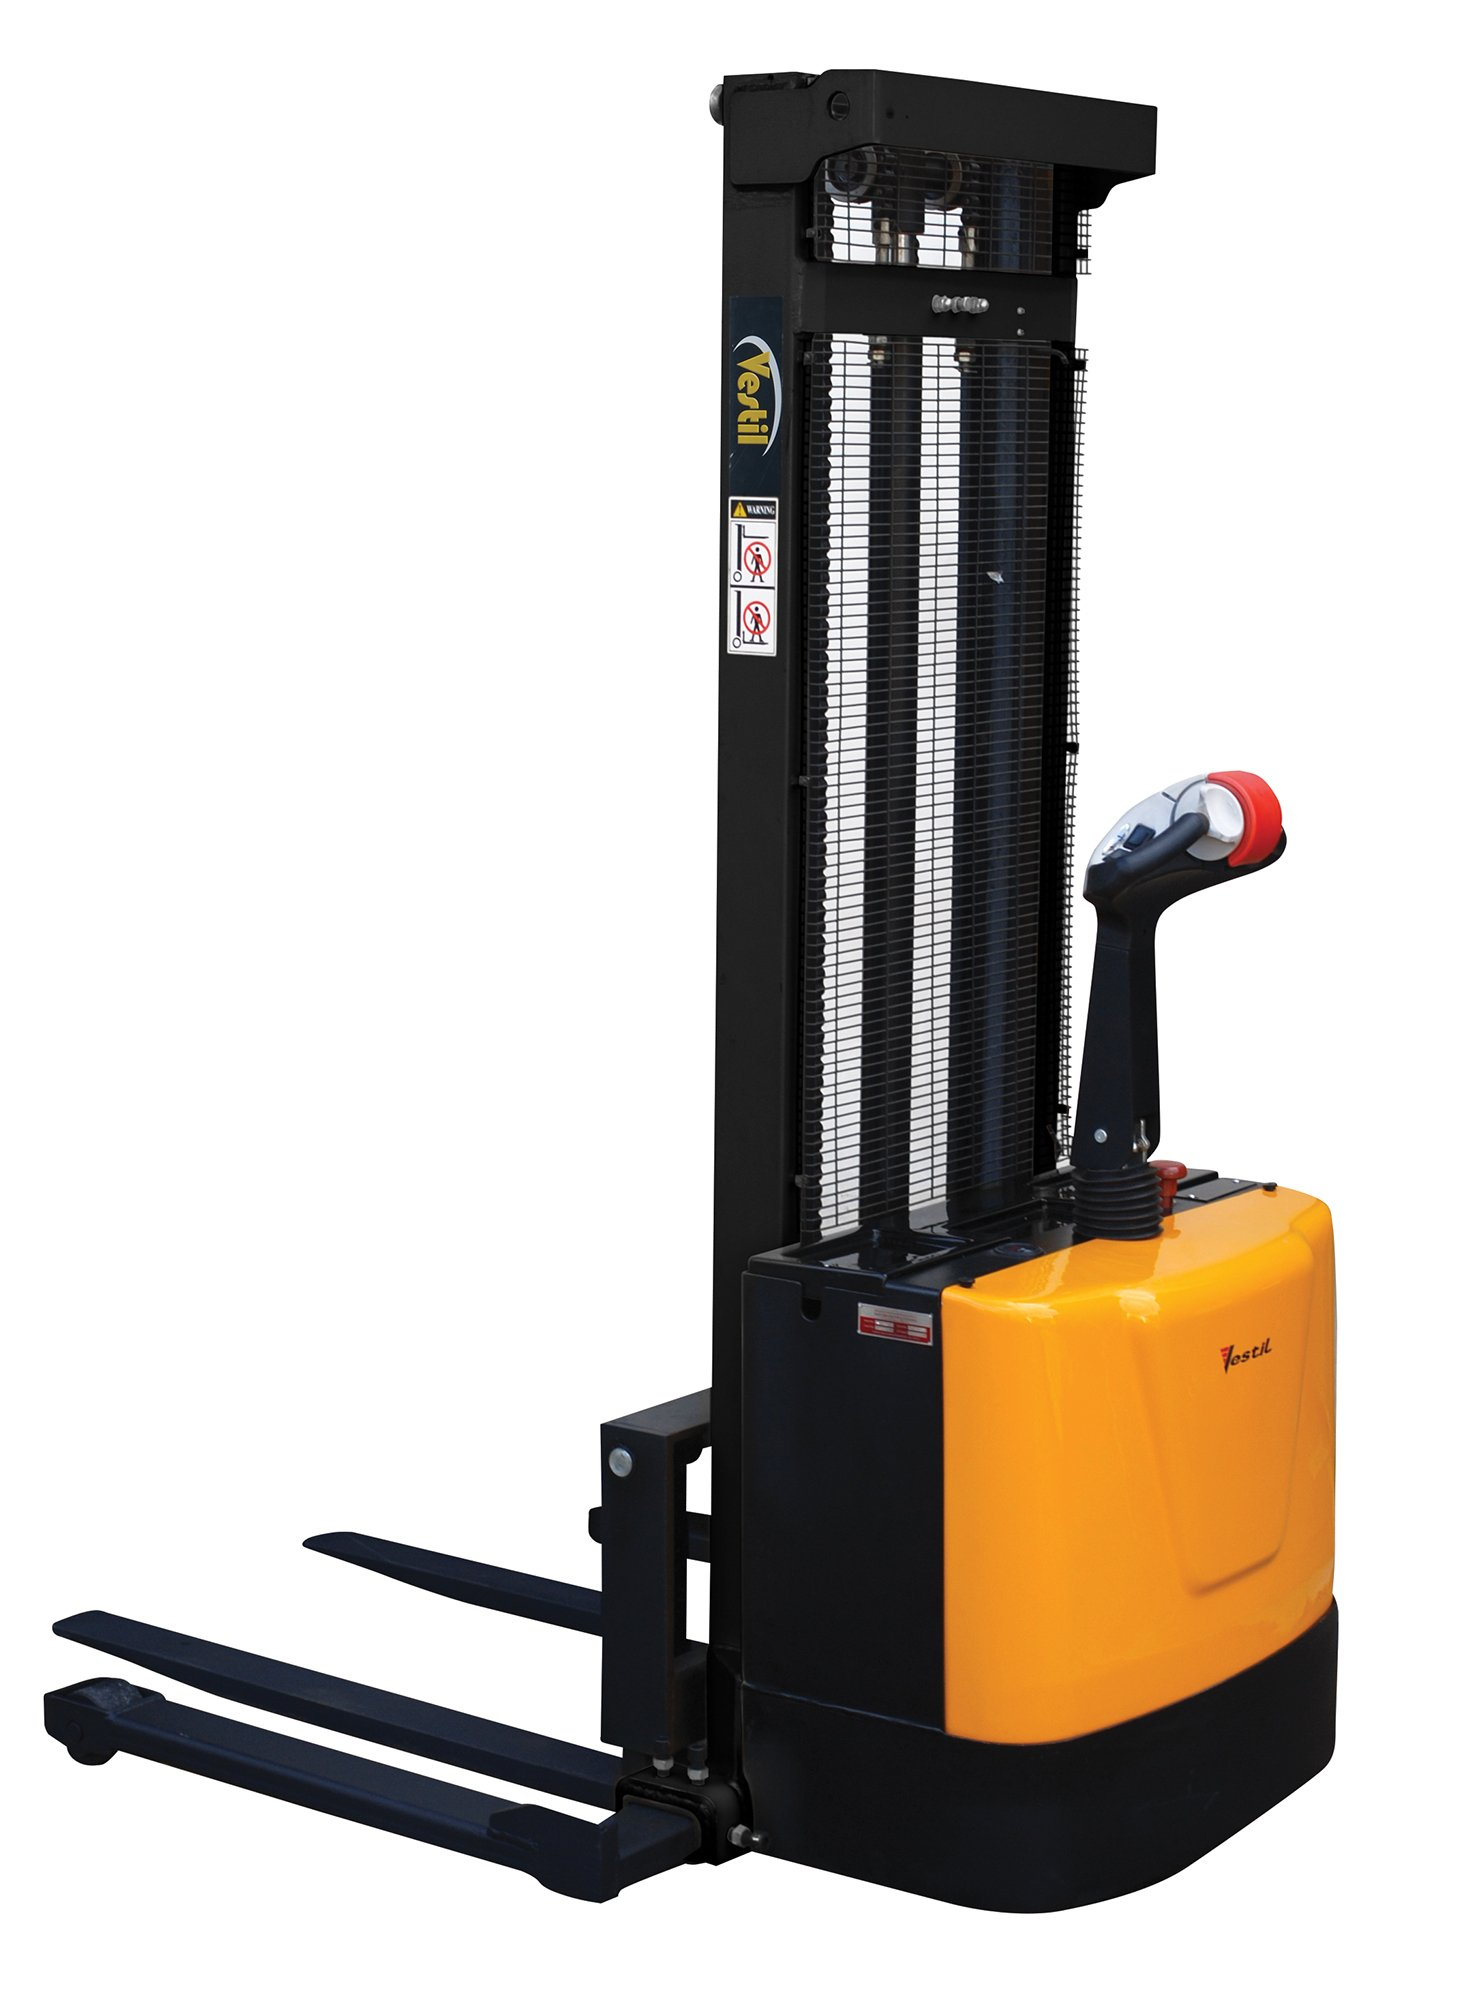 Vestil S-118-AA Powered Drive and Powered Lift Stacker with Adjustable Forks and Support Legs, 2-1/4''-118'' Height Range, 42'' Length x 26-3/4'' Width Fork by Vestil